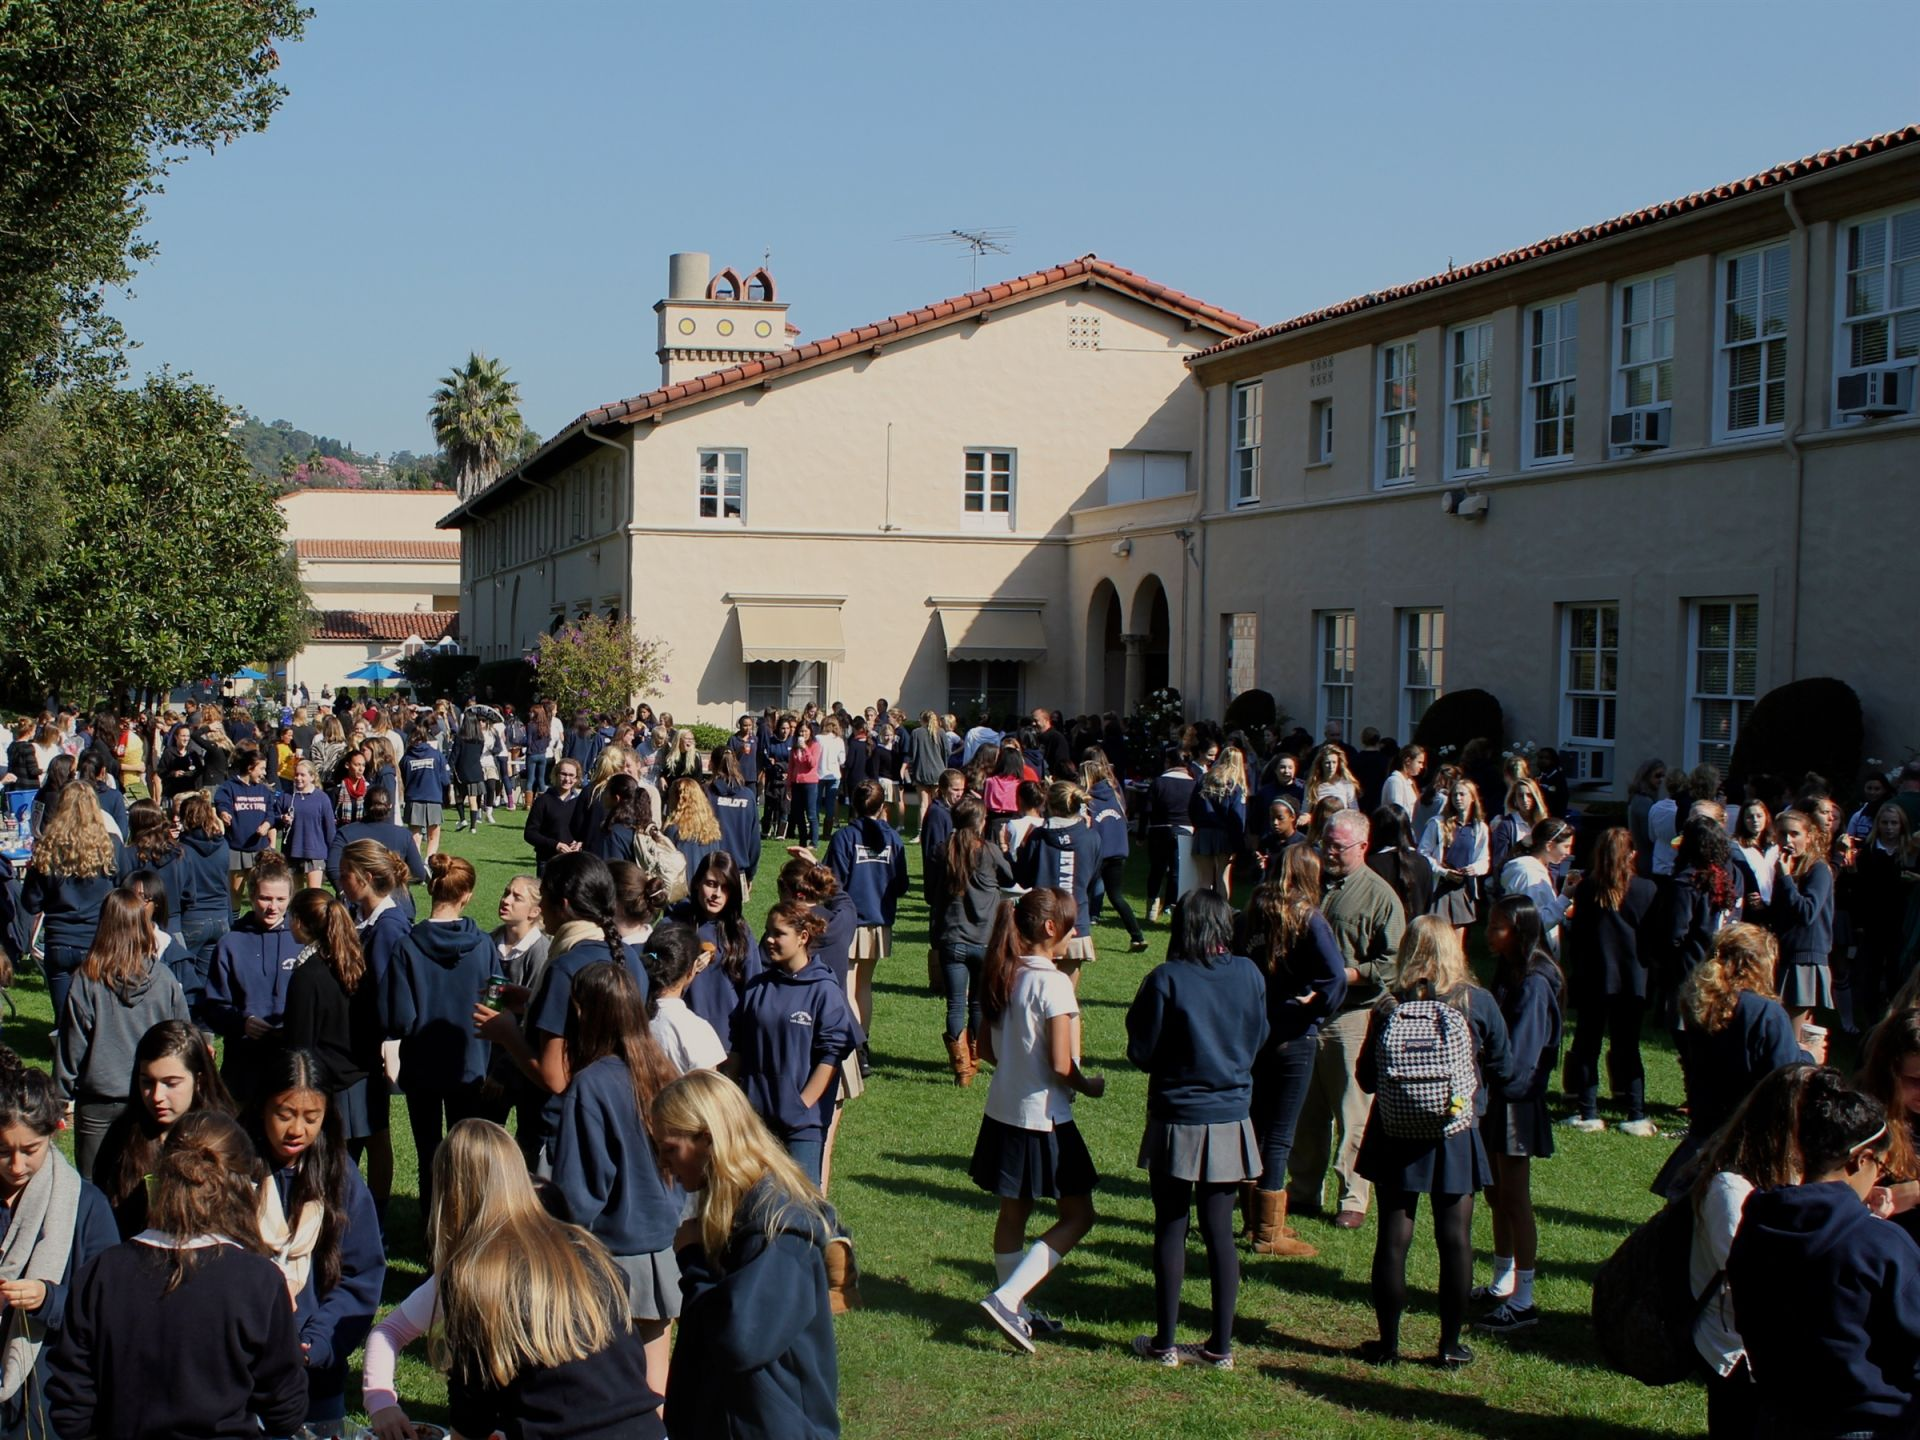 Heading back up to Senior Lawn, you will find there are always lots of school activities happening here.